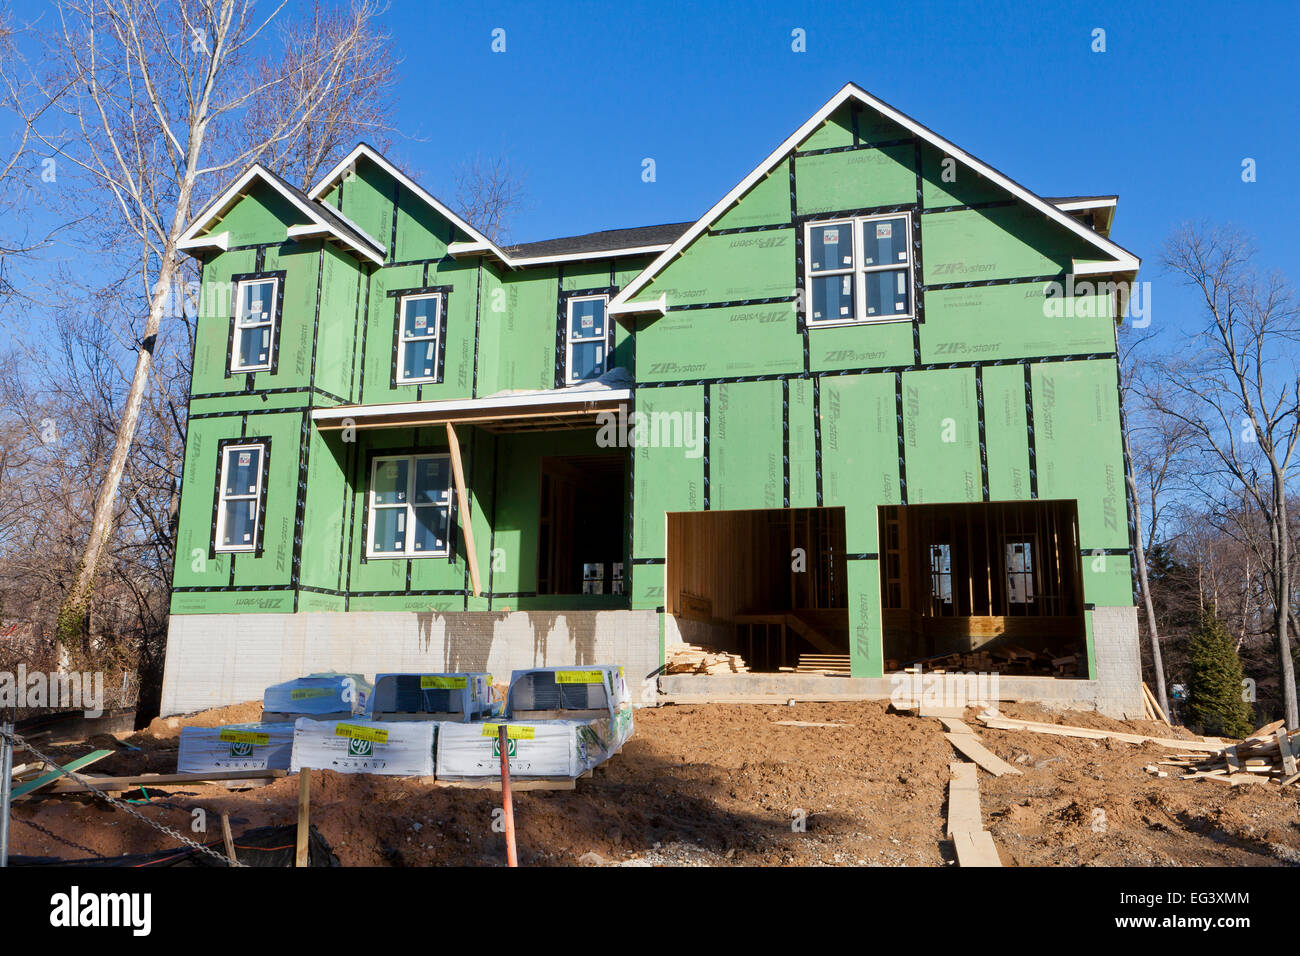 New house with zip sheathing and stretch tape house wrap for Sheathing house wrap